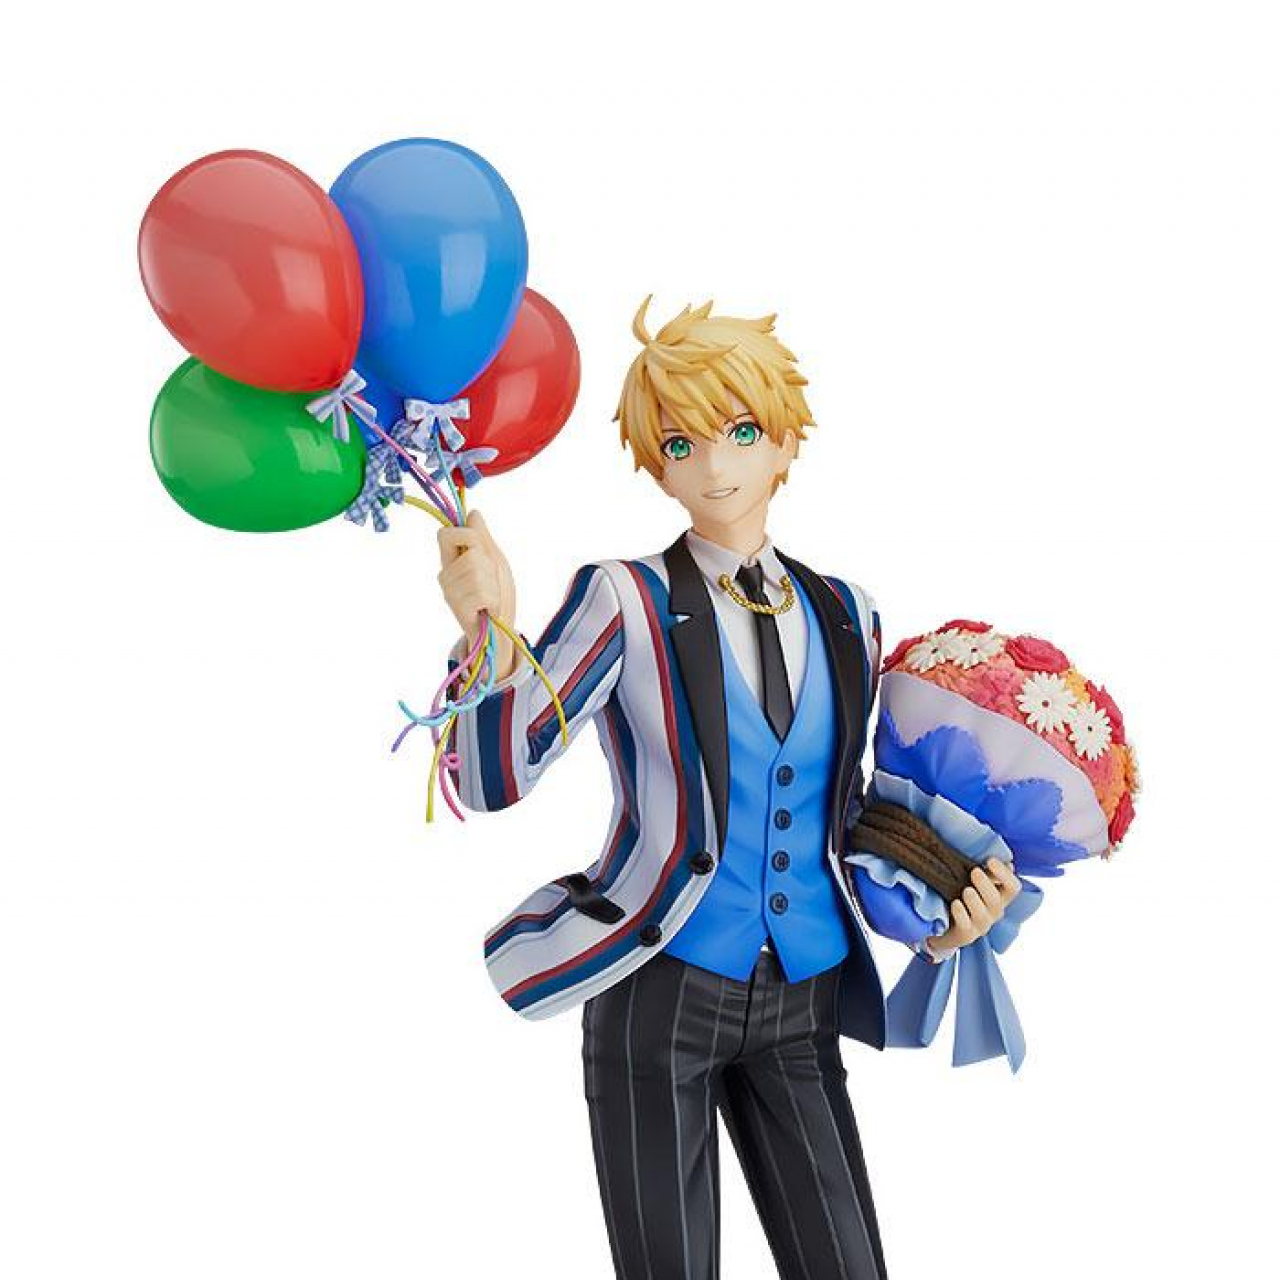 Fate/Grand Order PVC Statue 1/8 Saber/Arthur Pendragon: Heroic Spirit Formal Dress Ver. 26 cm